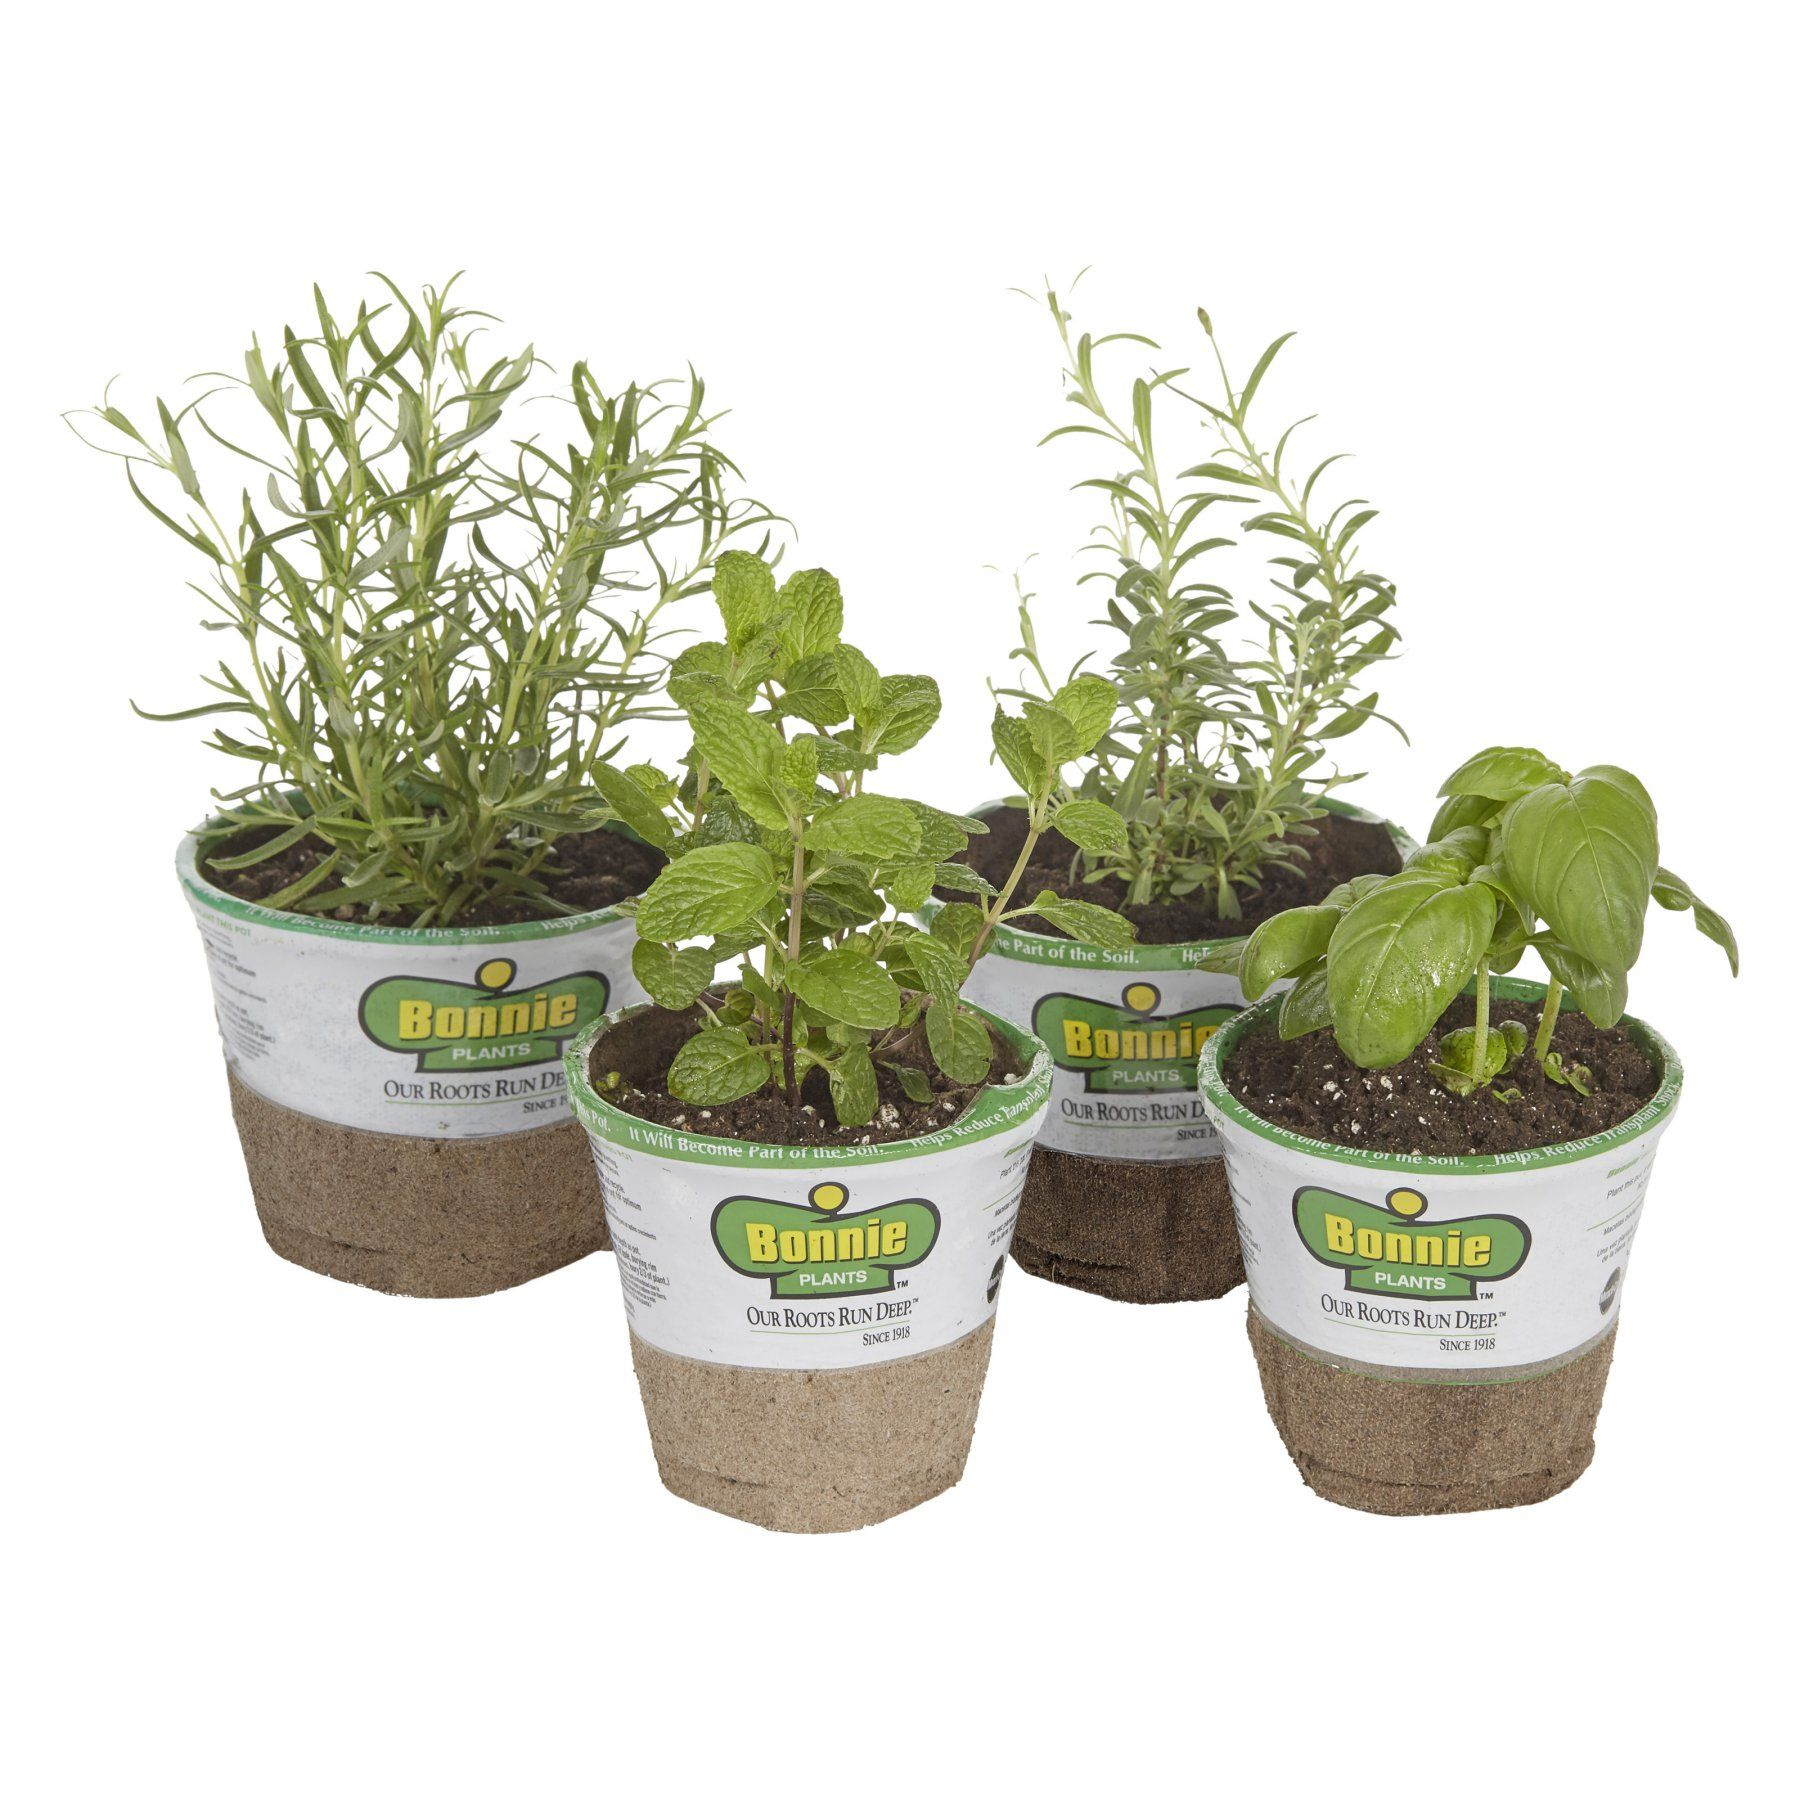 Bonnie Plants Cocktail Herb Garden Set Of 4 Live Plants